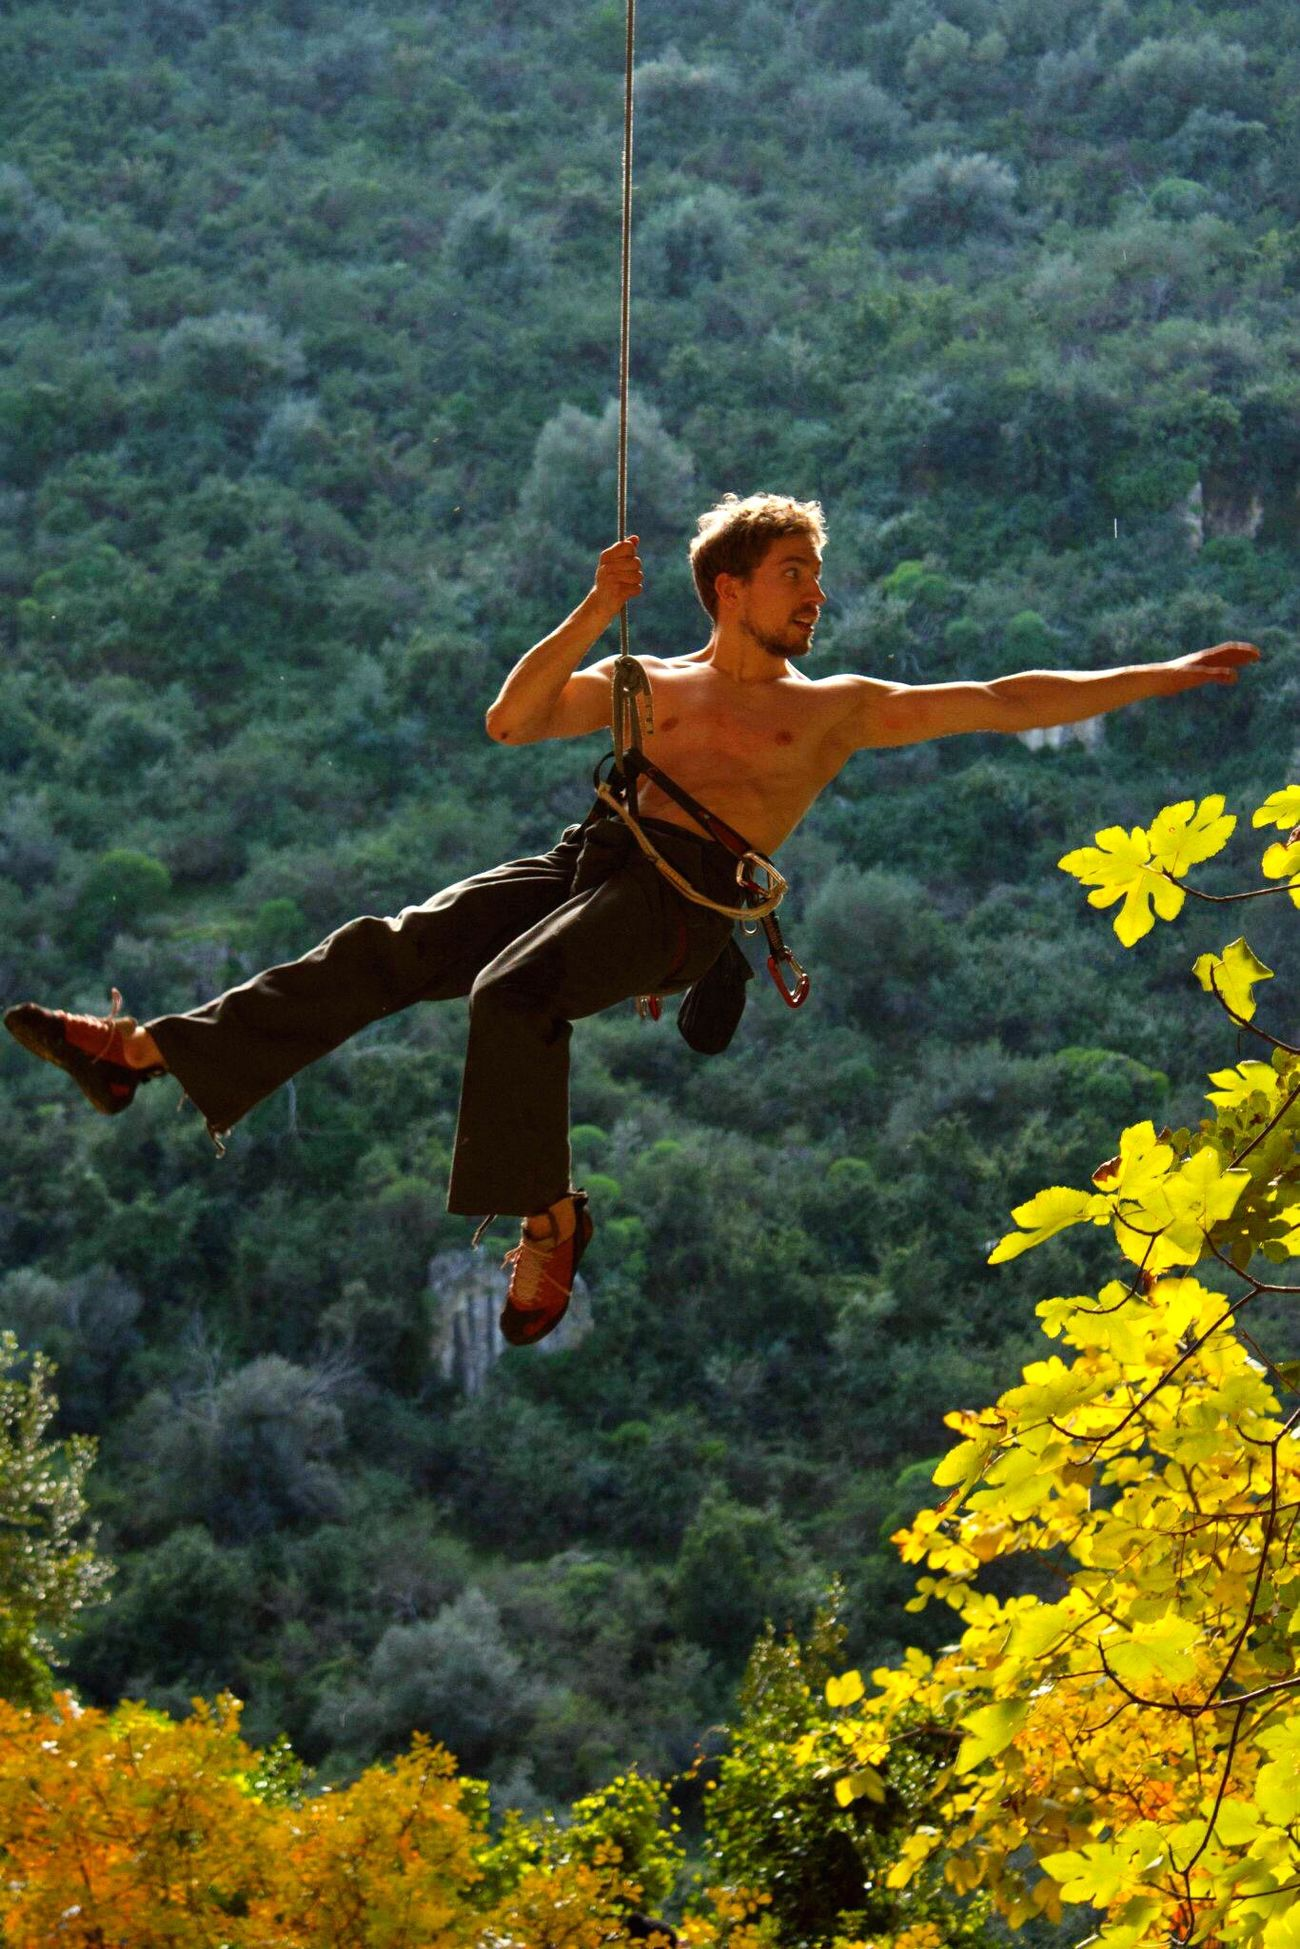 Extreme Sports Hanging Around Hanging Out With Friends Flying Rock Climbing Sports Photography Sport Sports Rope Swing Rope Klettern Seil Hängen Siracusa Sicily